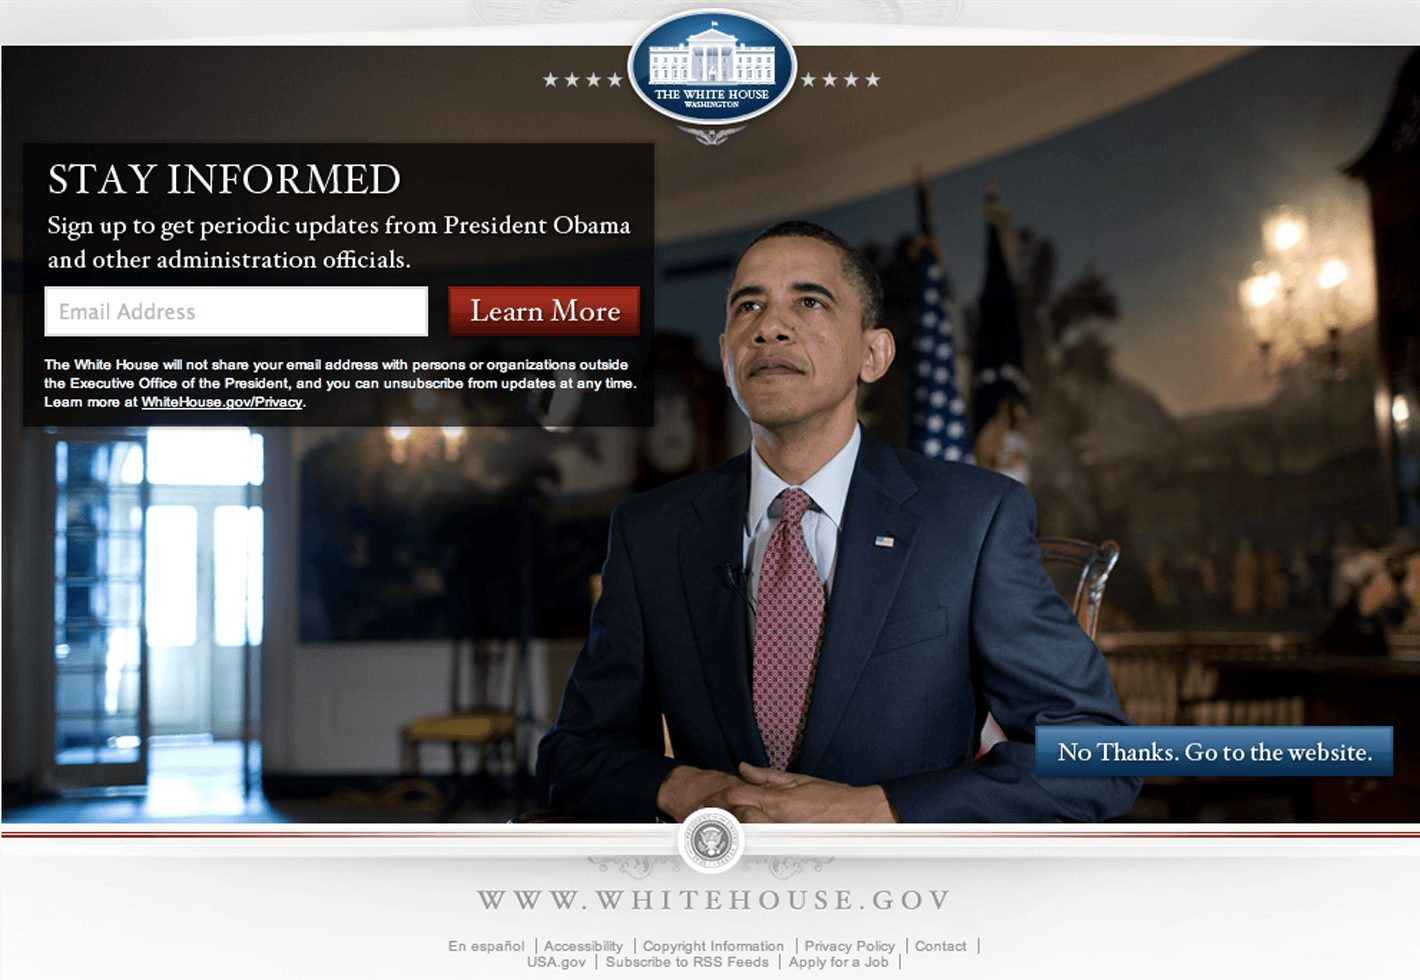 Website White House mit Newsletter Formular